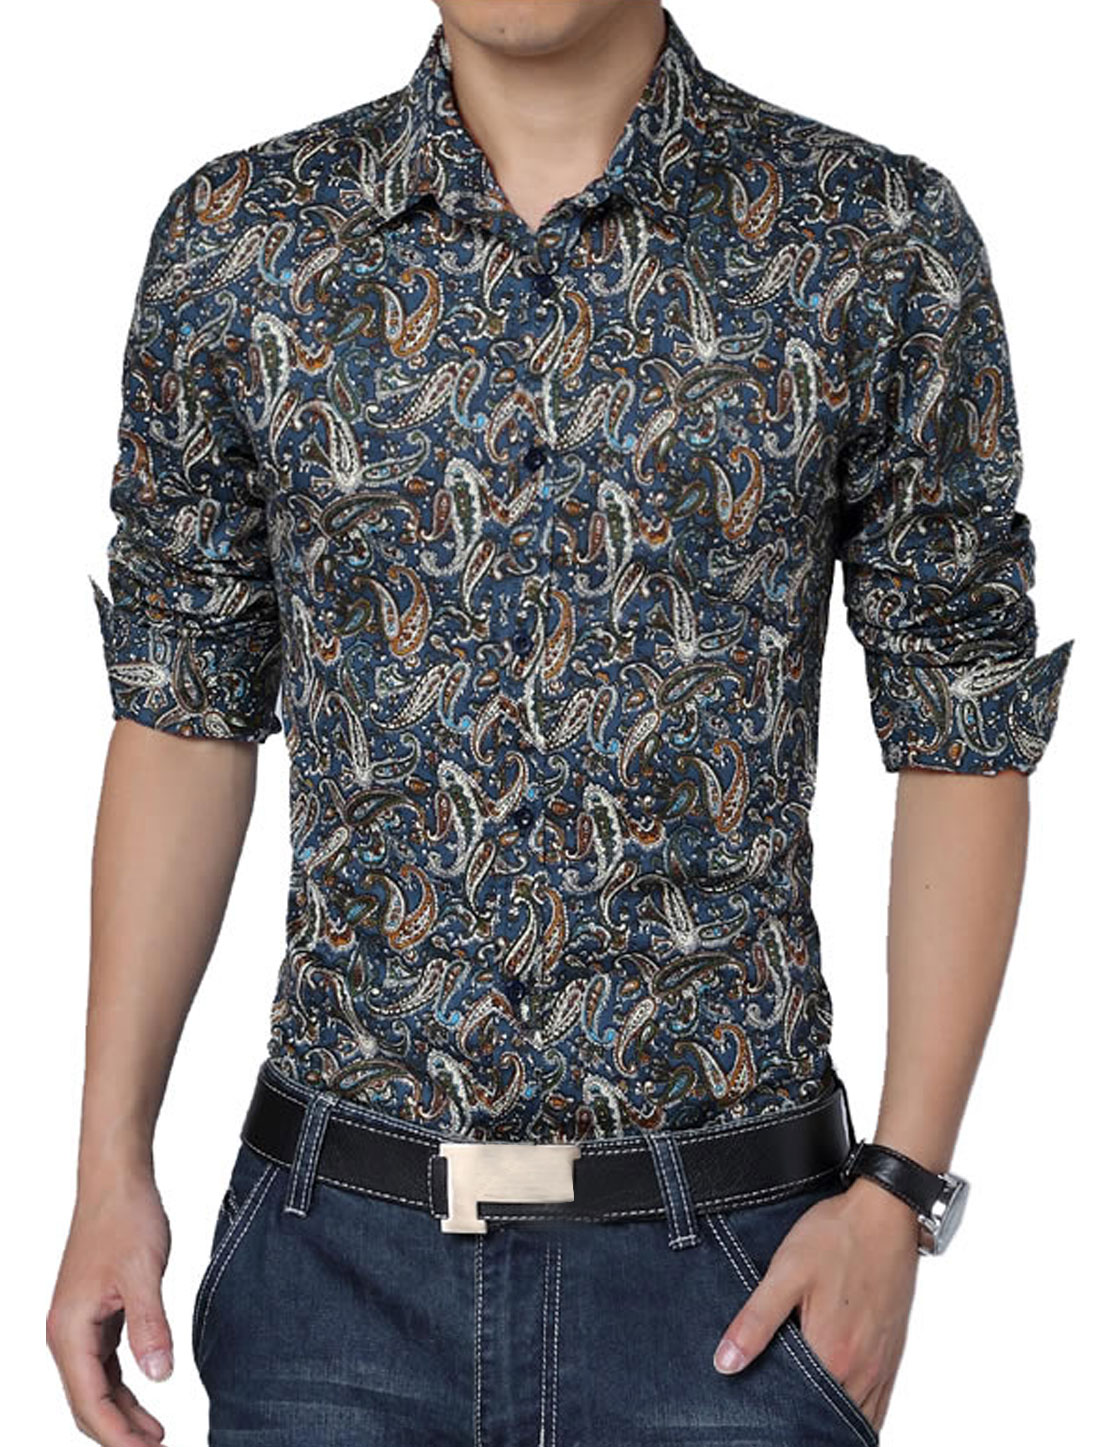 Men Long Sleeve Paisleys Single Breasted Shirt Navy Blue L